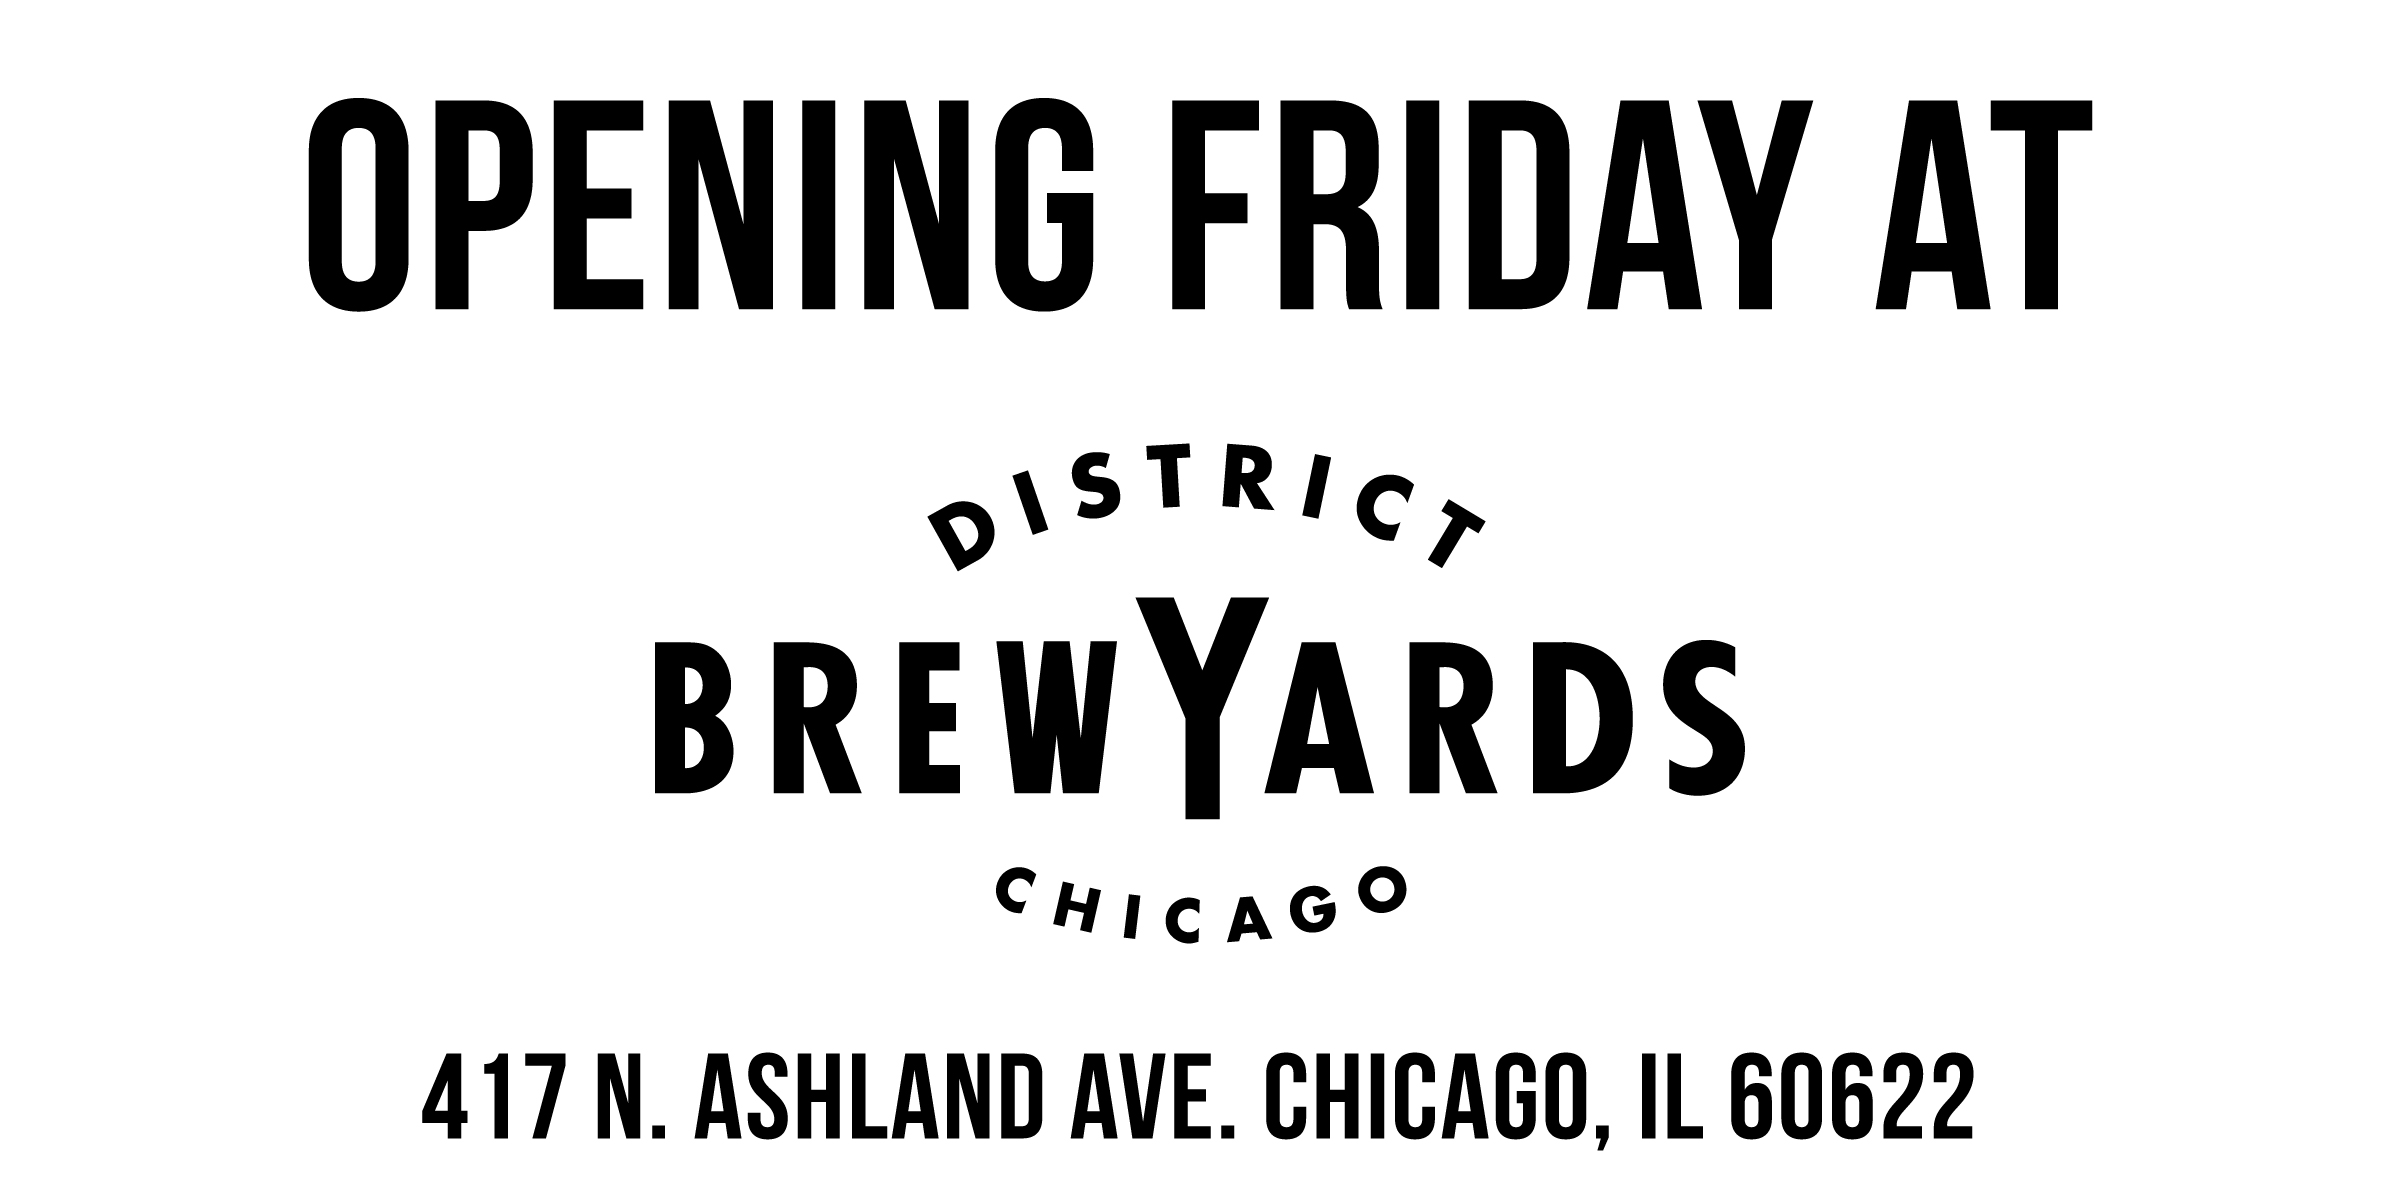 Now Open at the District Brew Yards 417 N Ashland Ave. Chicago, IL 60622